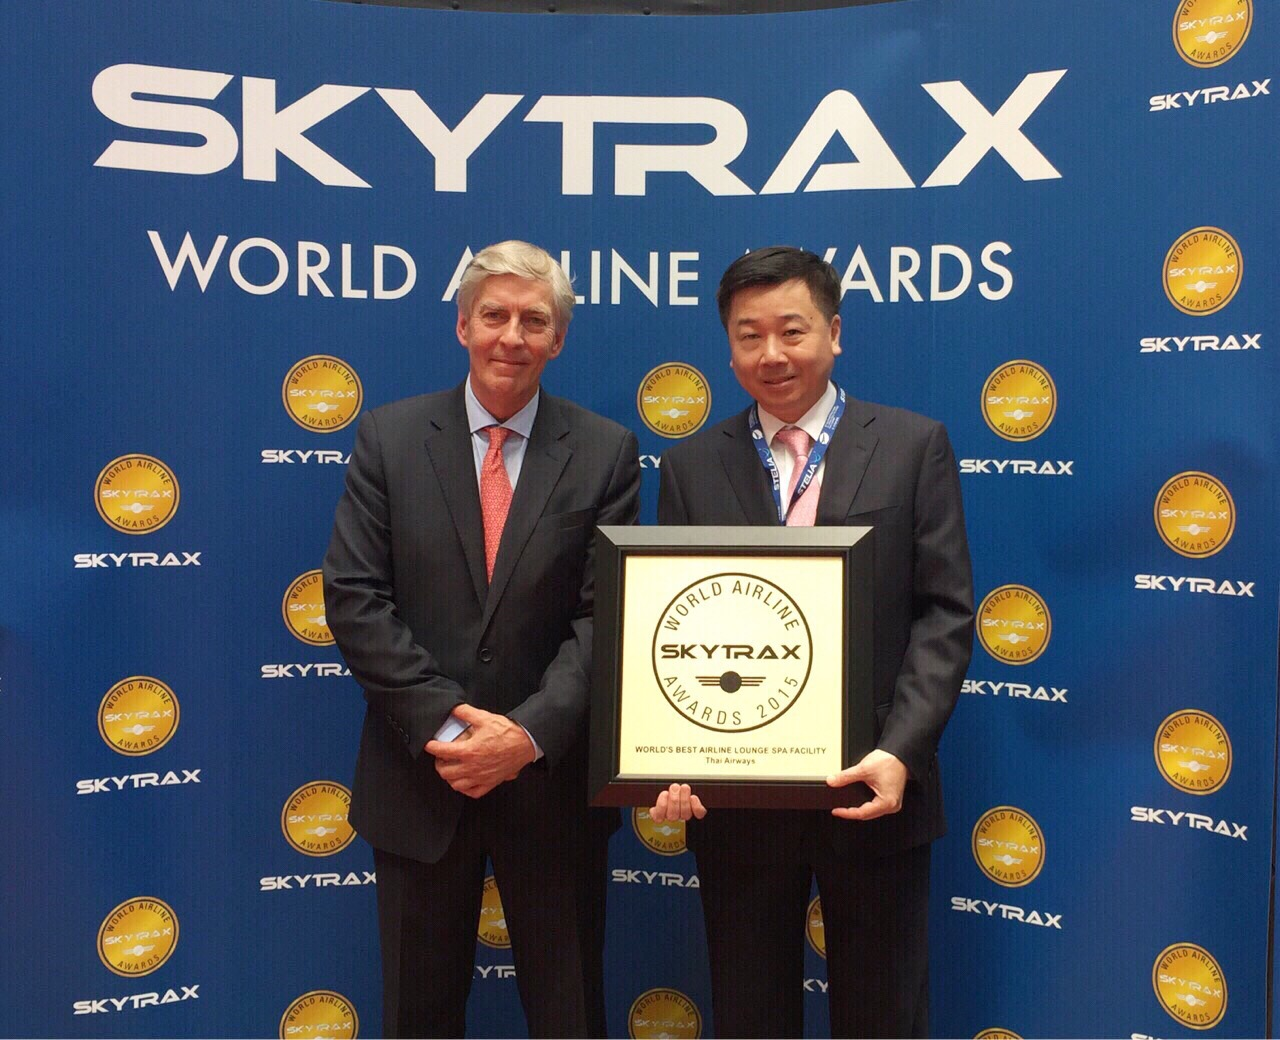 Skytrax 2017 Awards